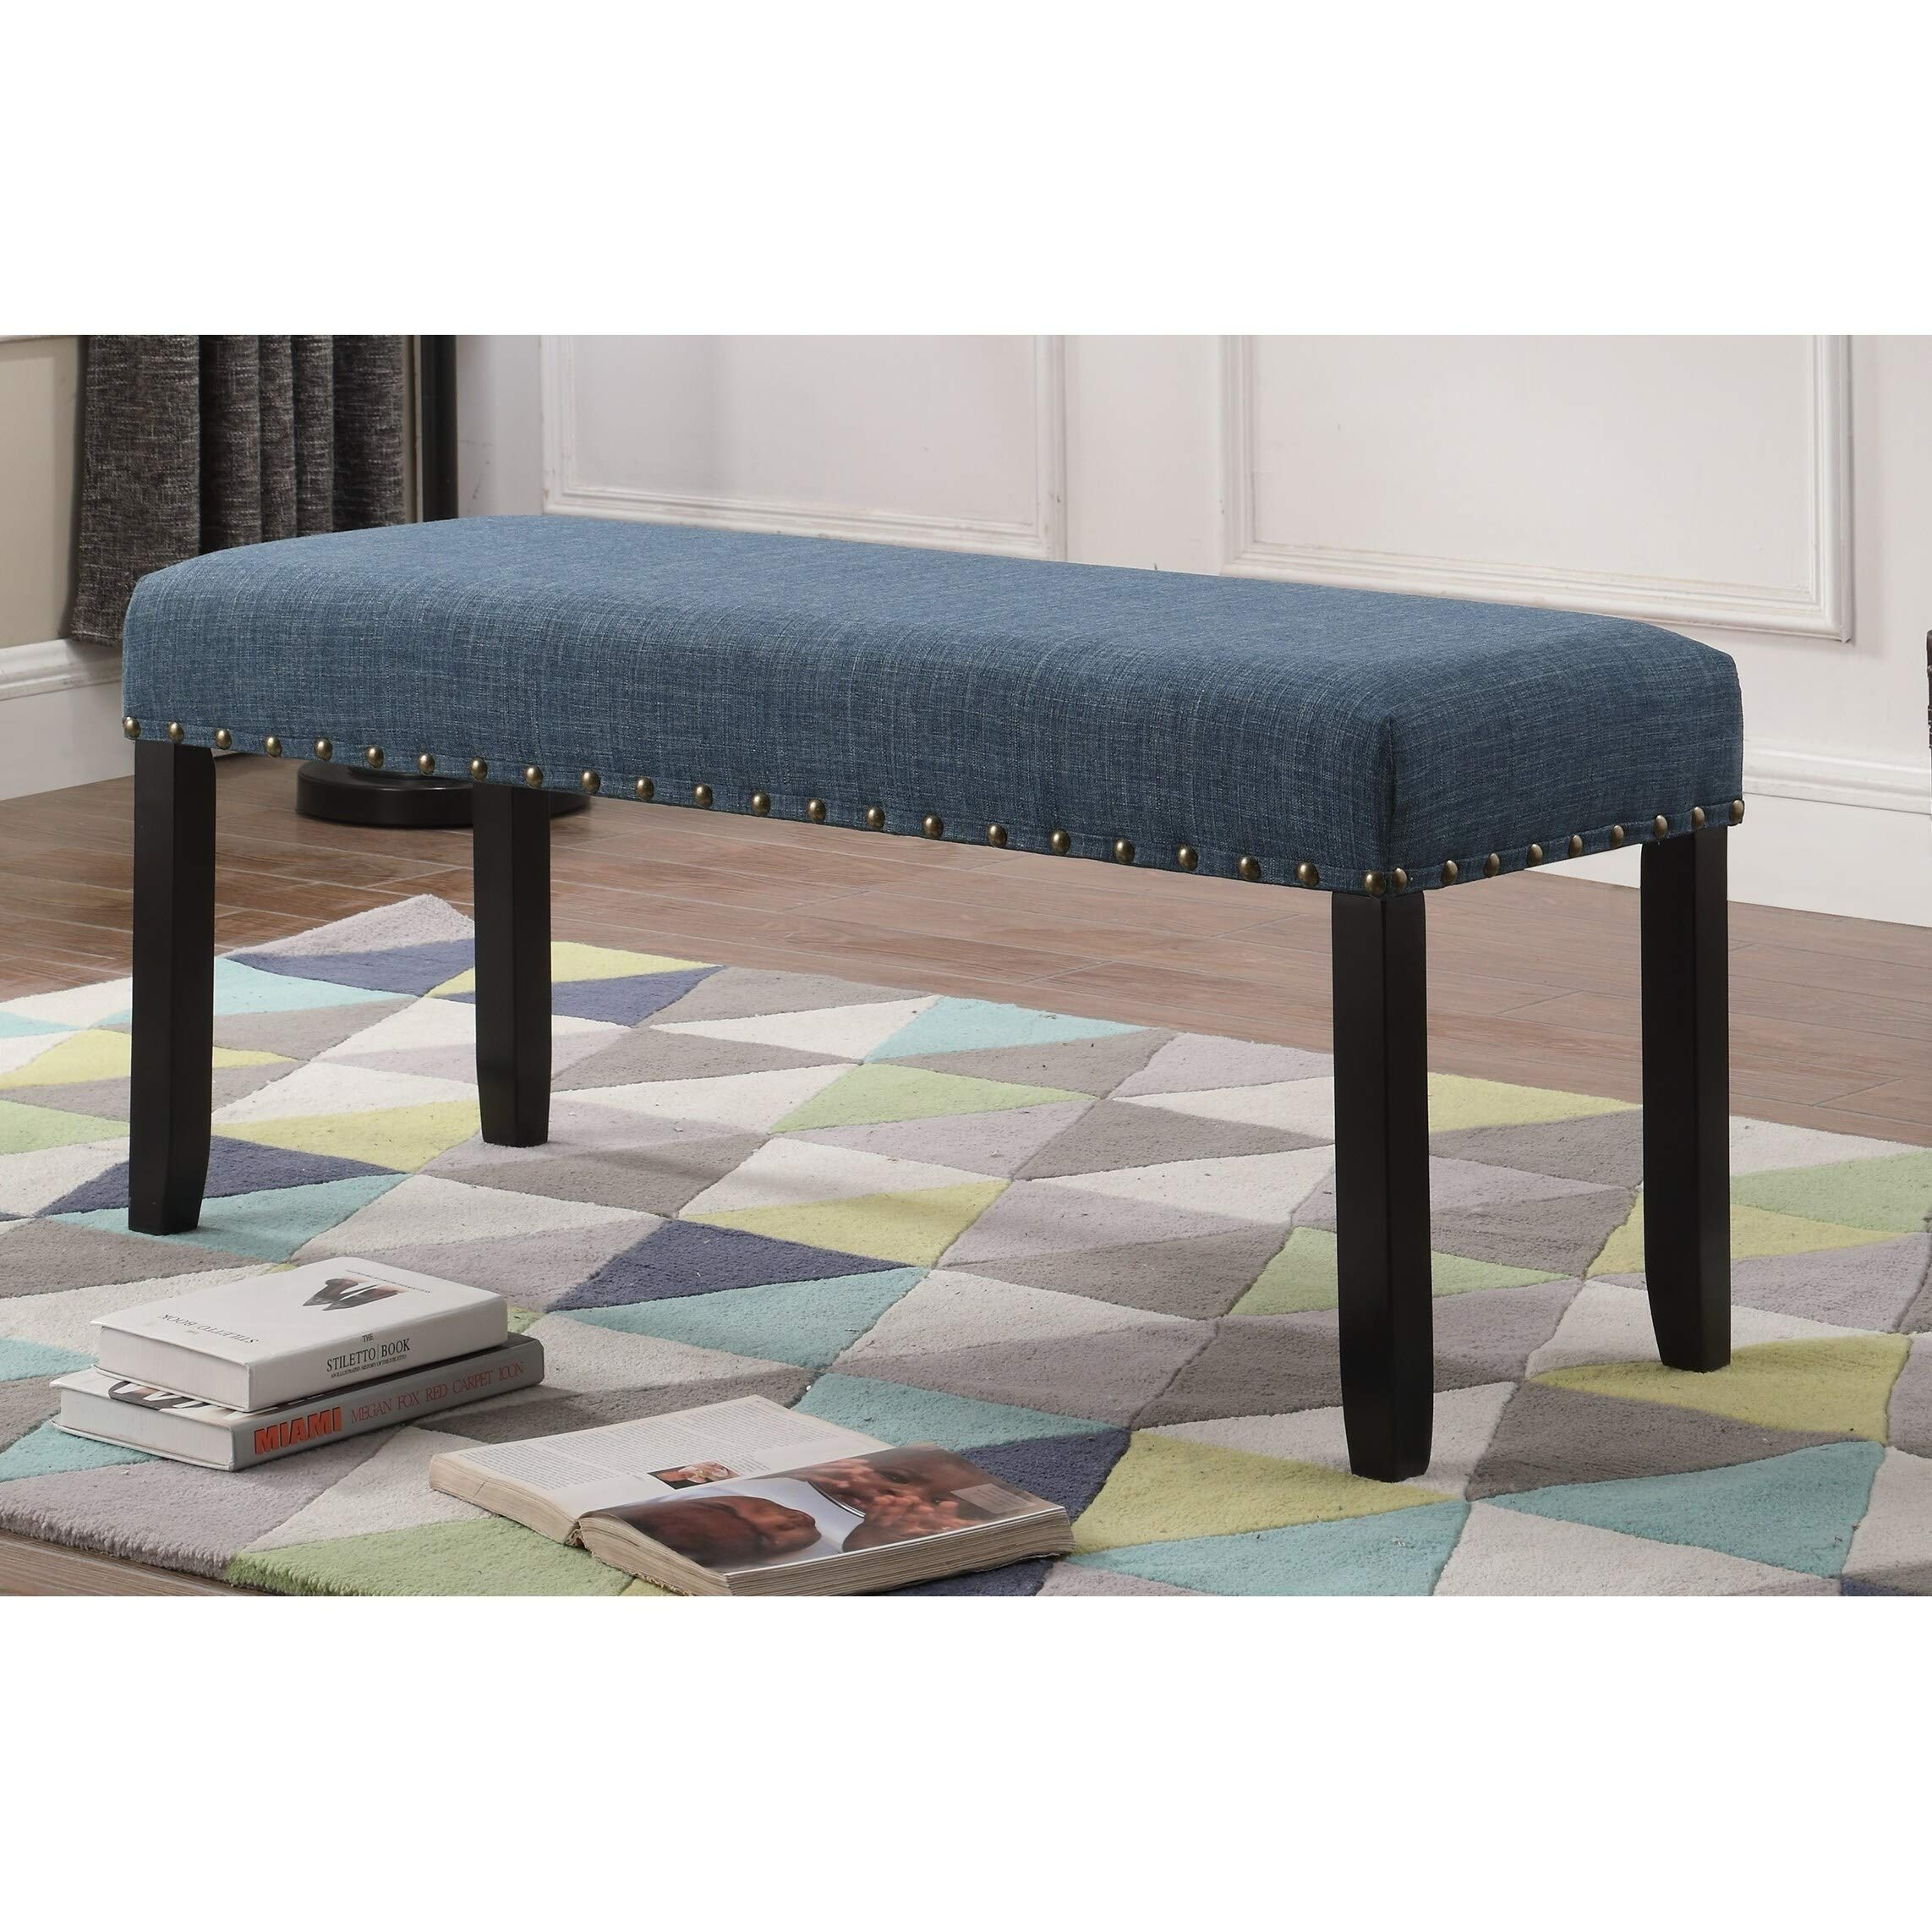 Roundhill Furniture Biony Fabric Dining Bench with Nailhead Trim, Blue by Roundhill Furniture